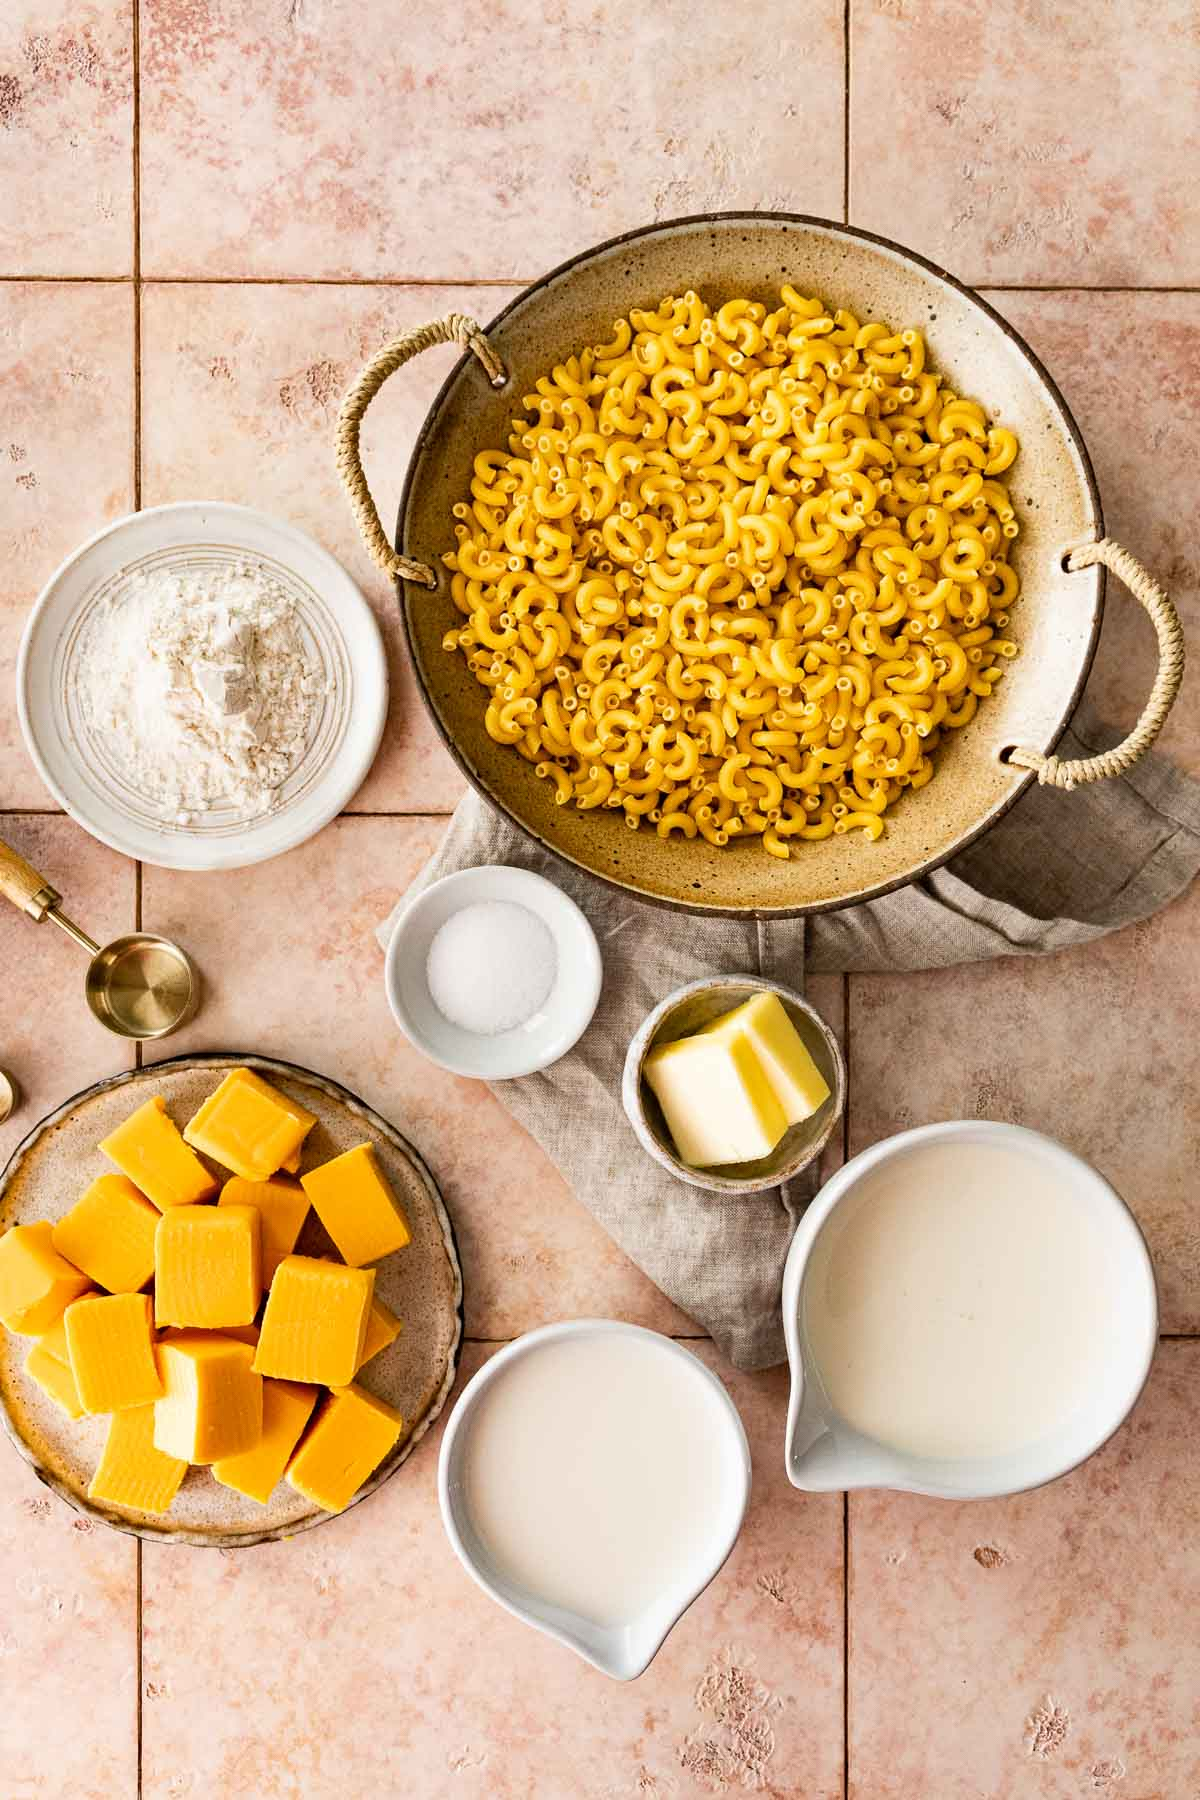 Ingredients in prep bowls for Skillet Creamy Mac and Cheese